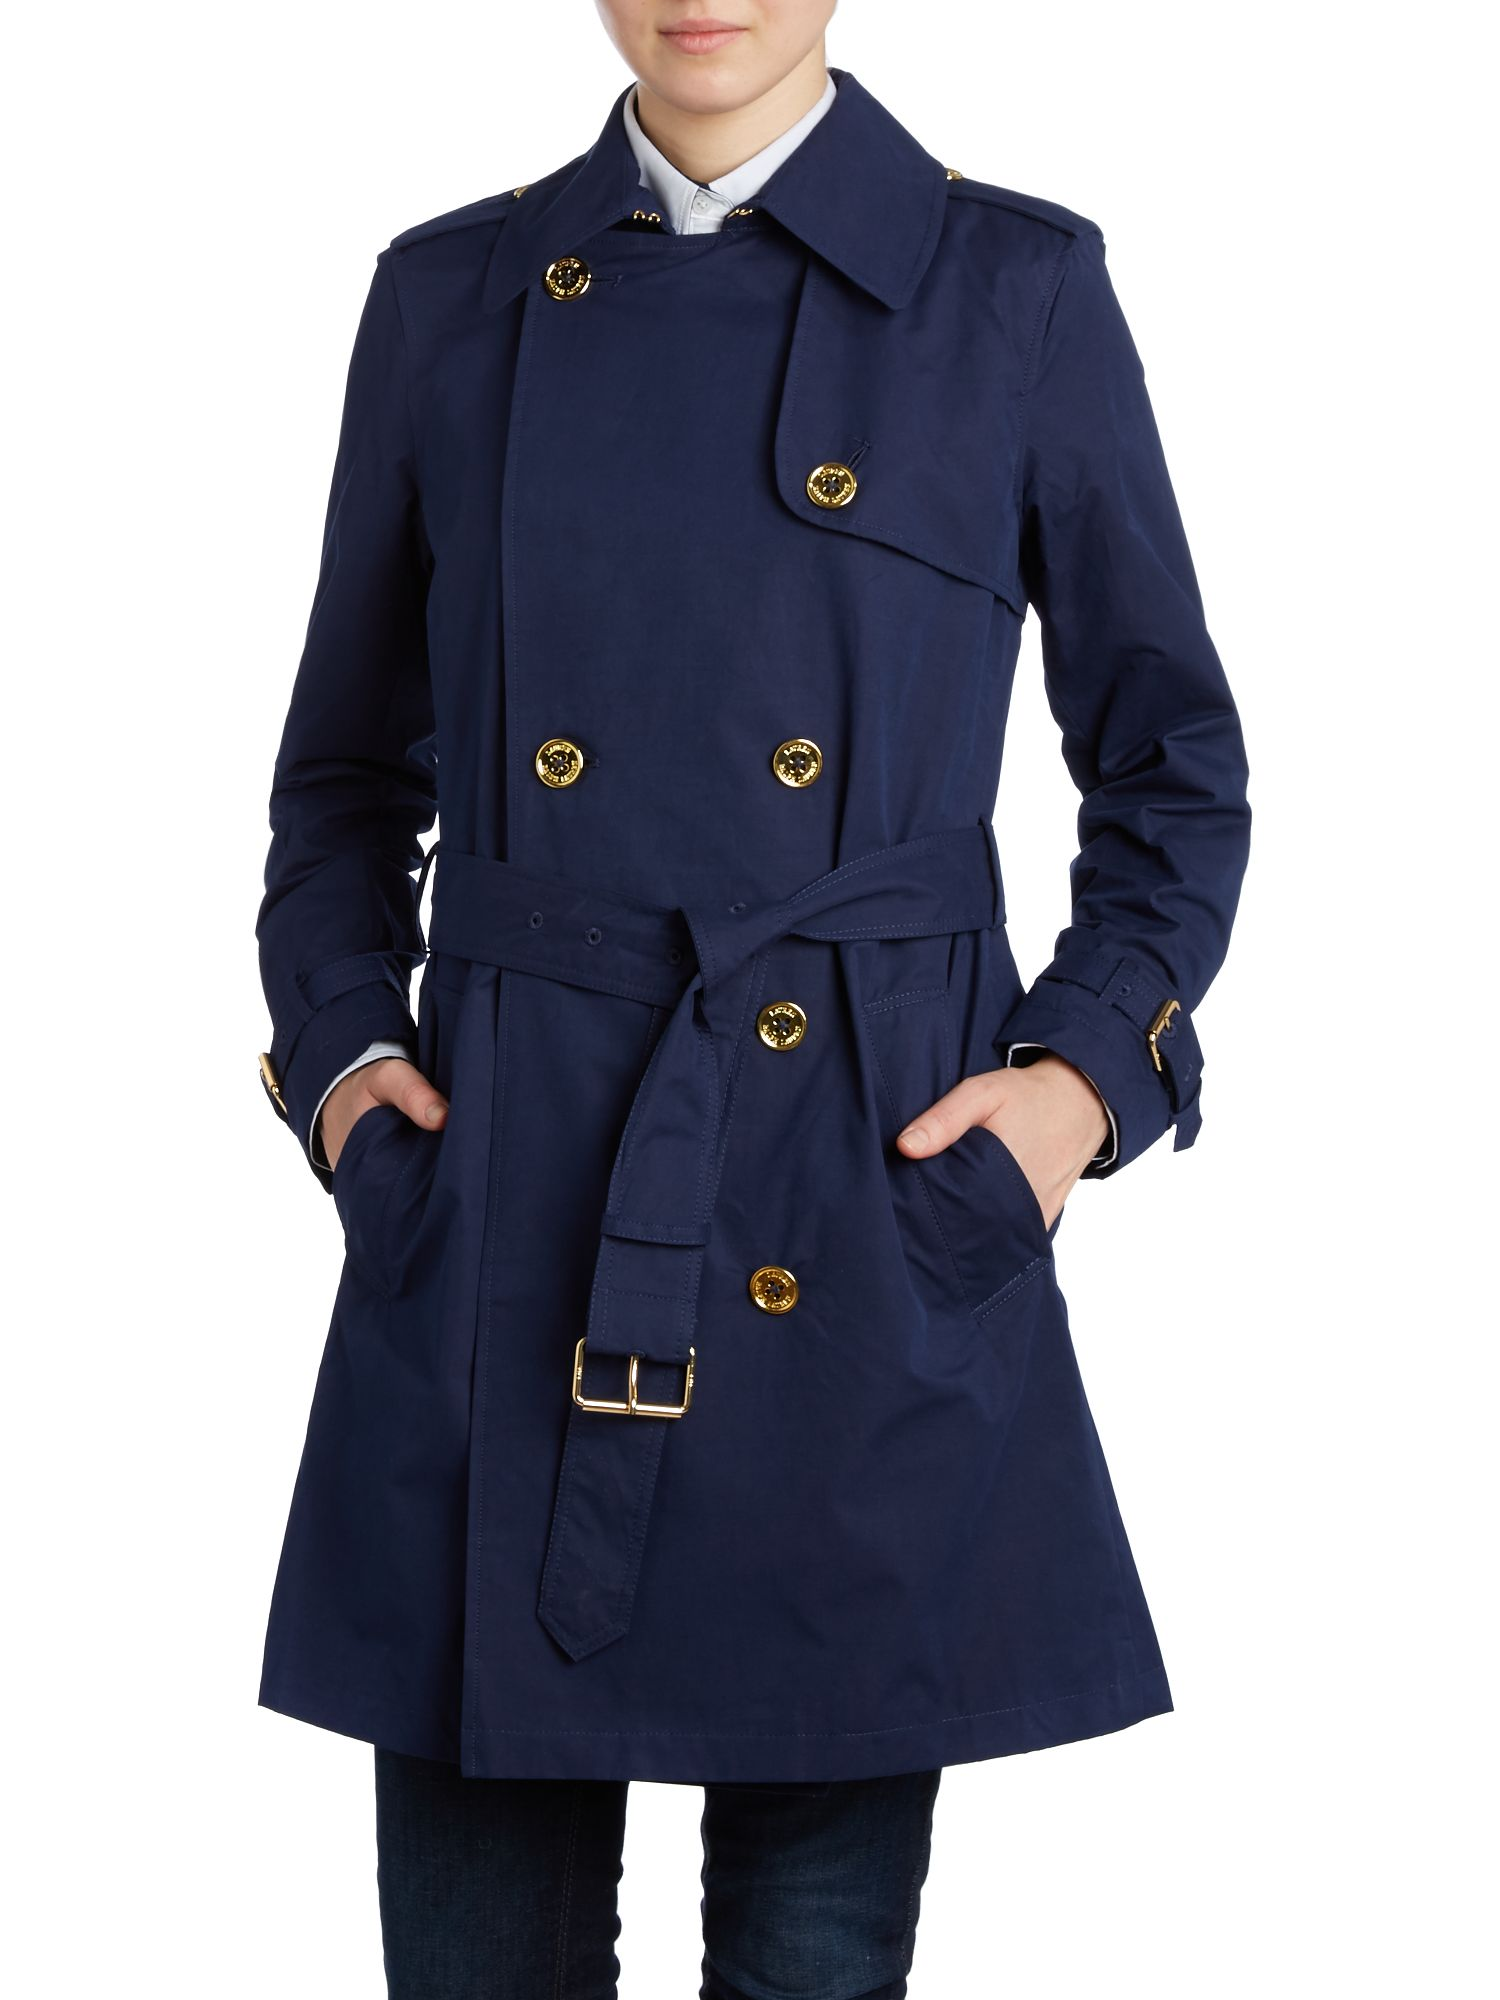 Trench coat with gold buttons